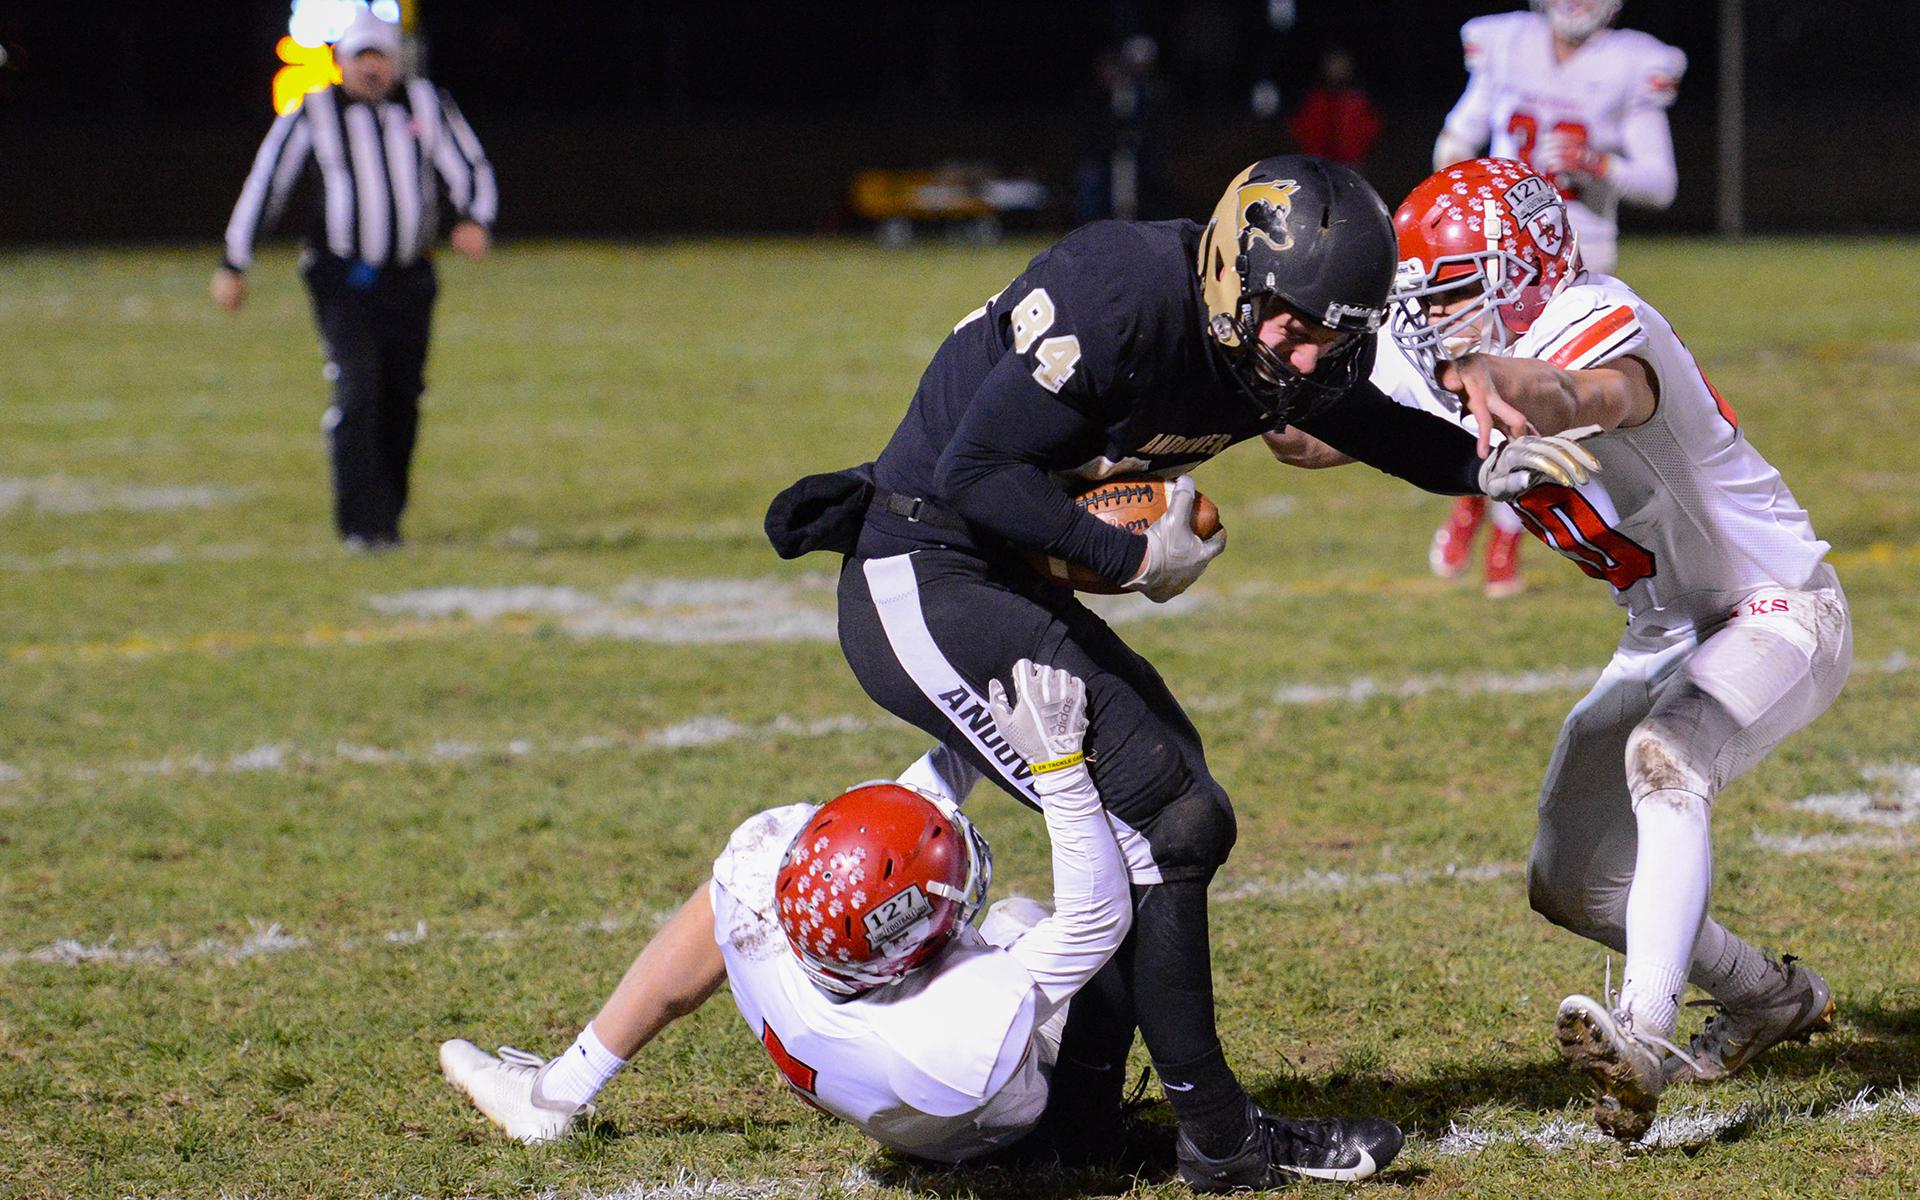 Andover wide receiver Lucas Beberg is brought down by a pair of Elk River defenders at Andover High School on Friday night. Photo by Carter Jones, SportsEngine